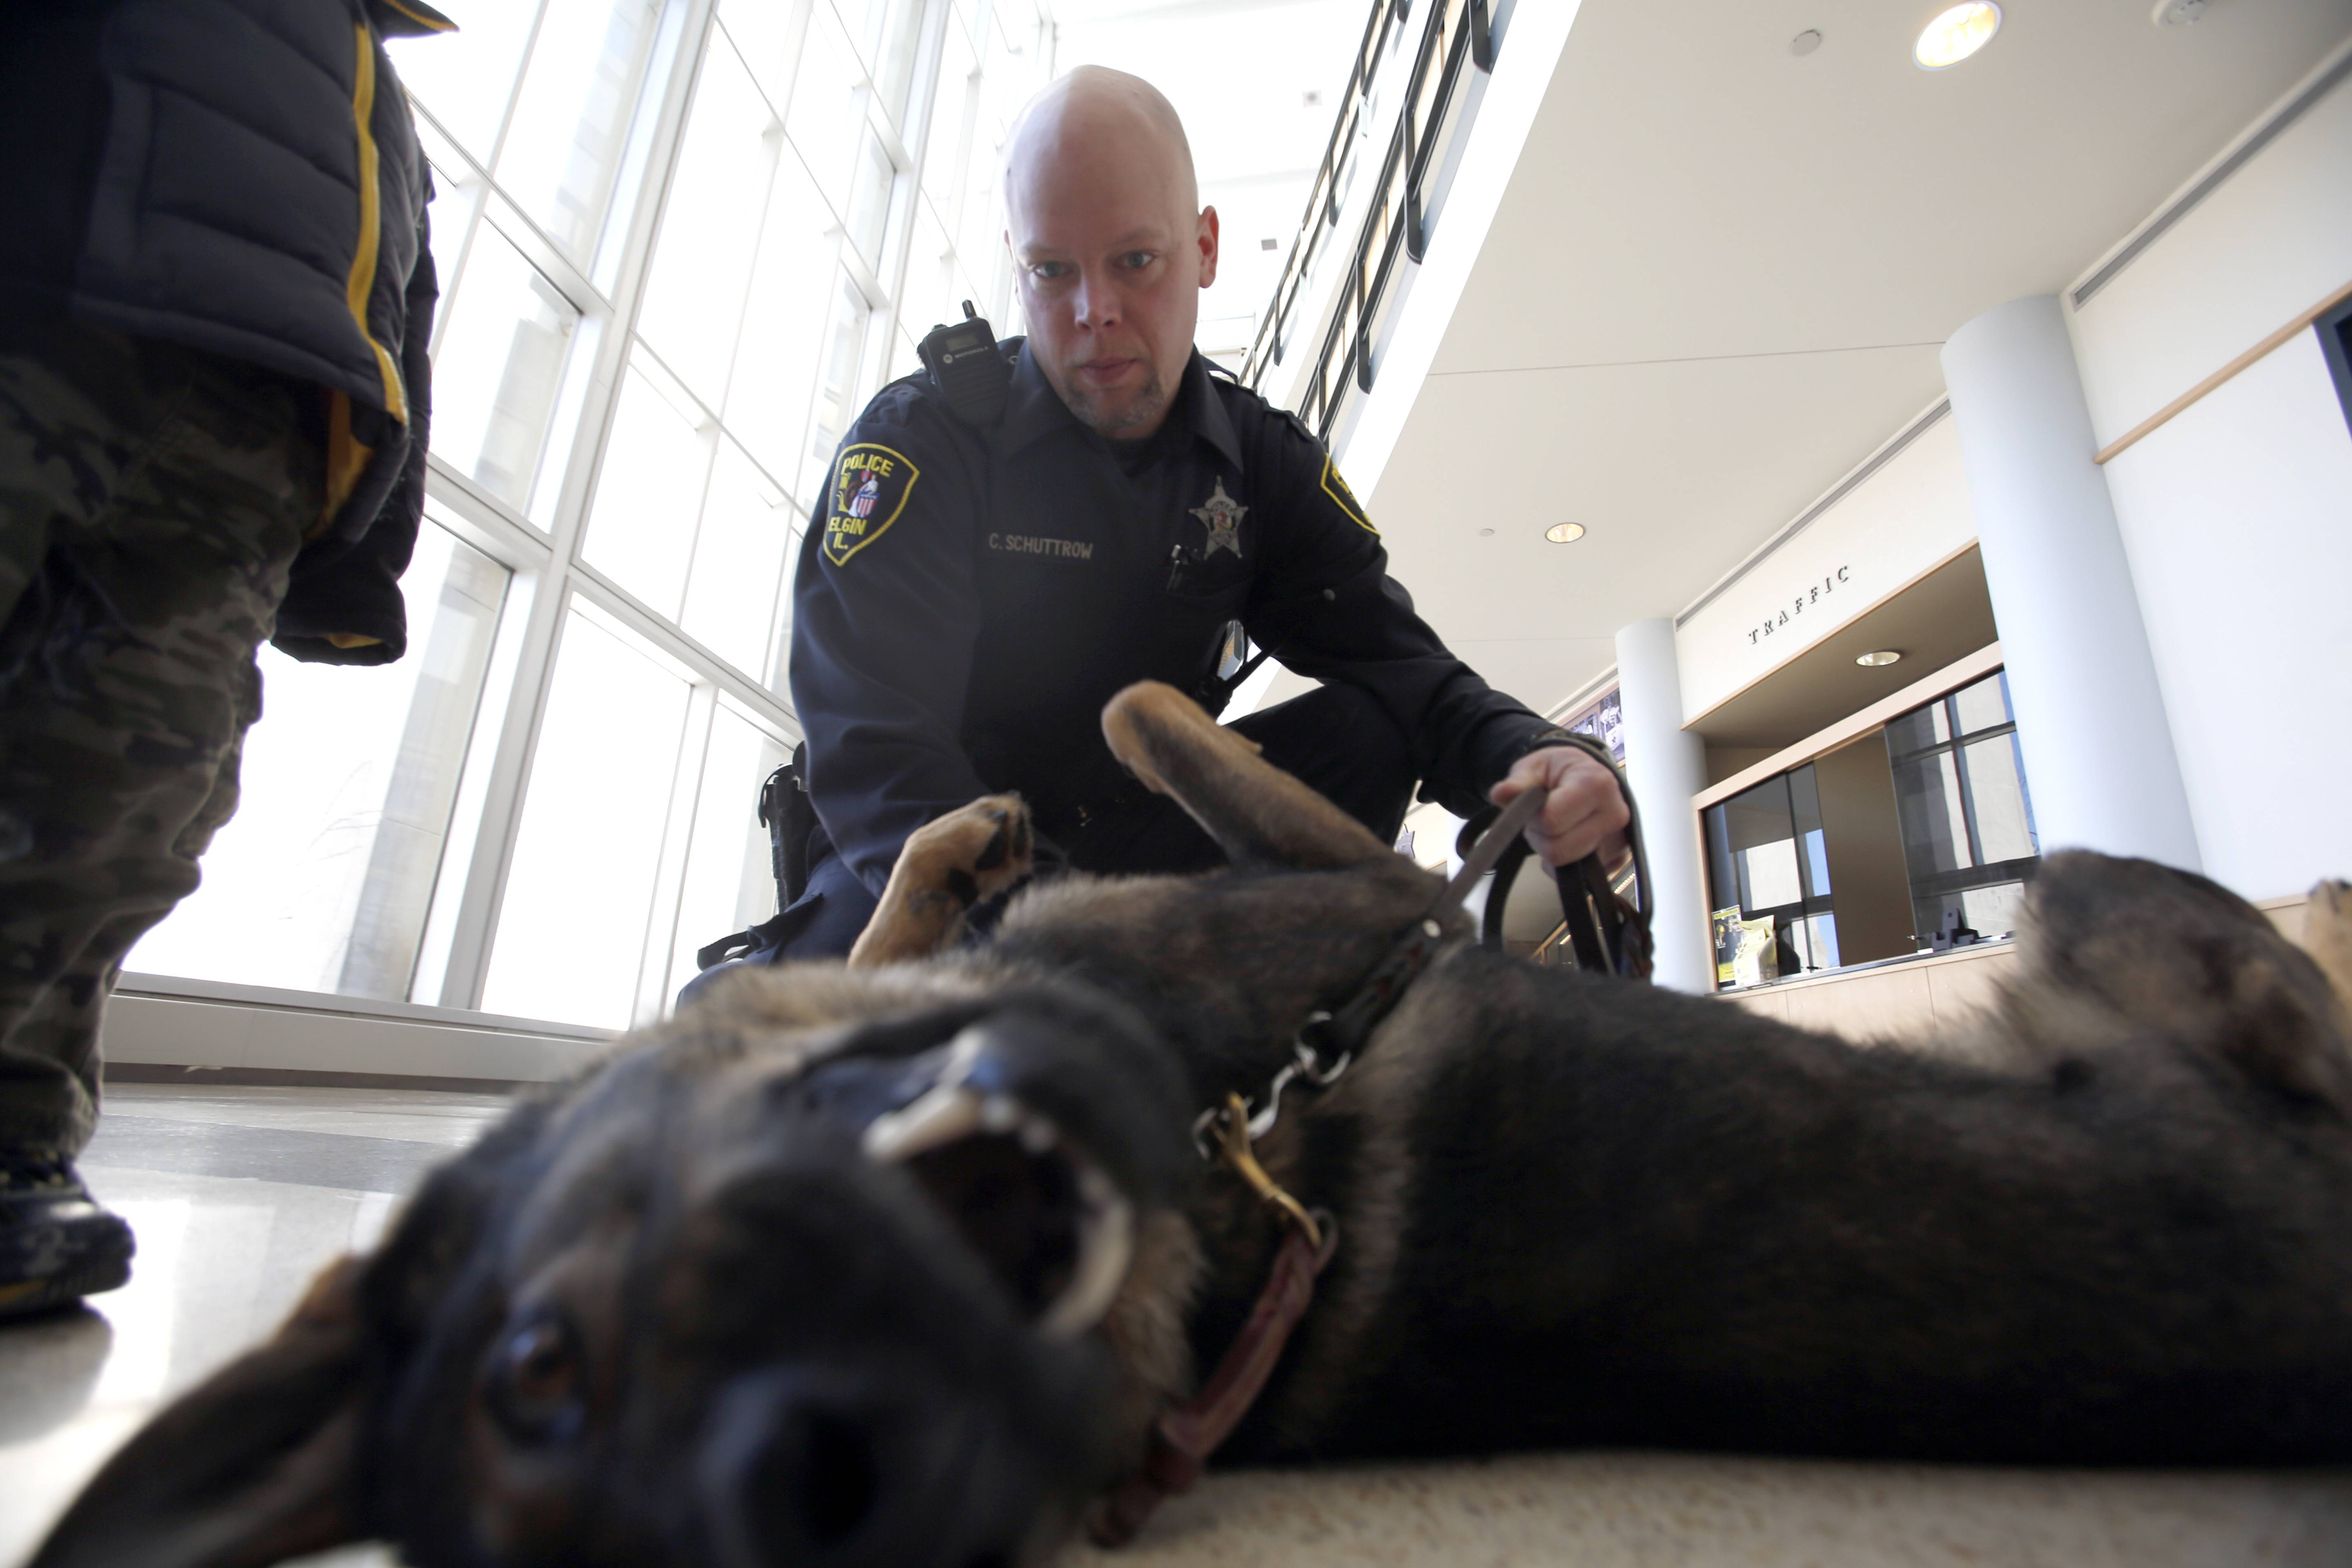 Colt, the newest addition to the Elgin Police Department, gets comfortable in the lobby of the police station. Officer Chad Schuttrow is his handler.